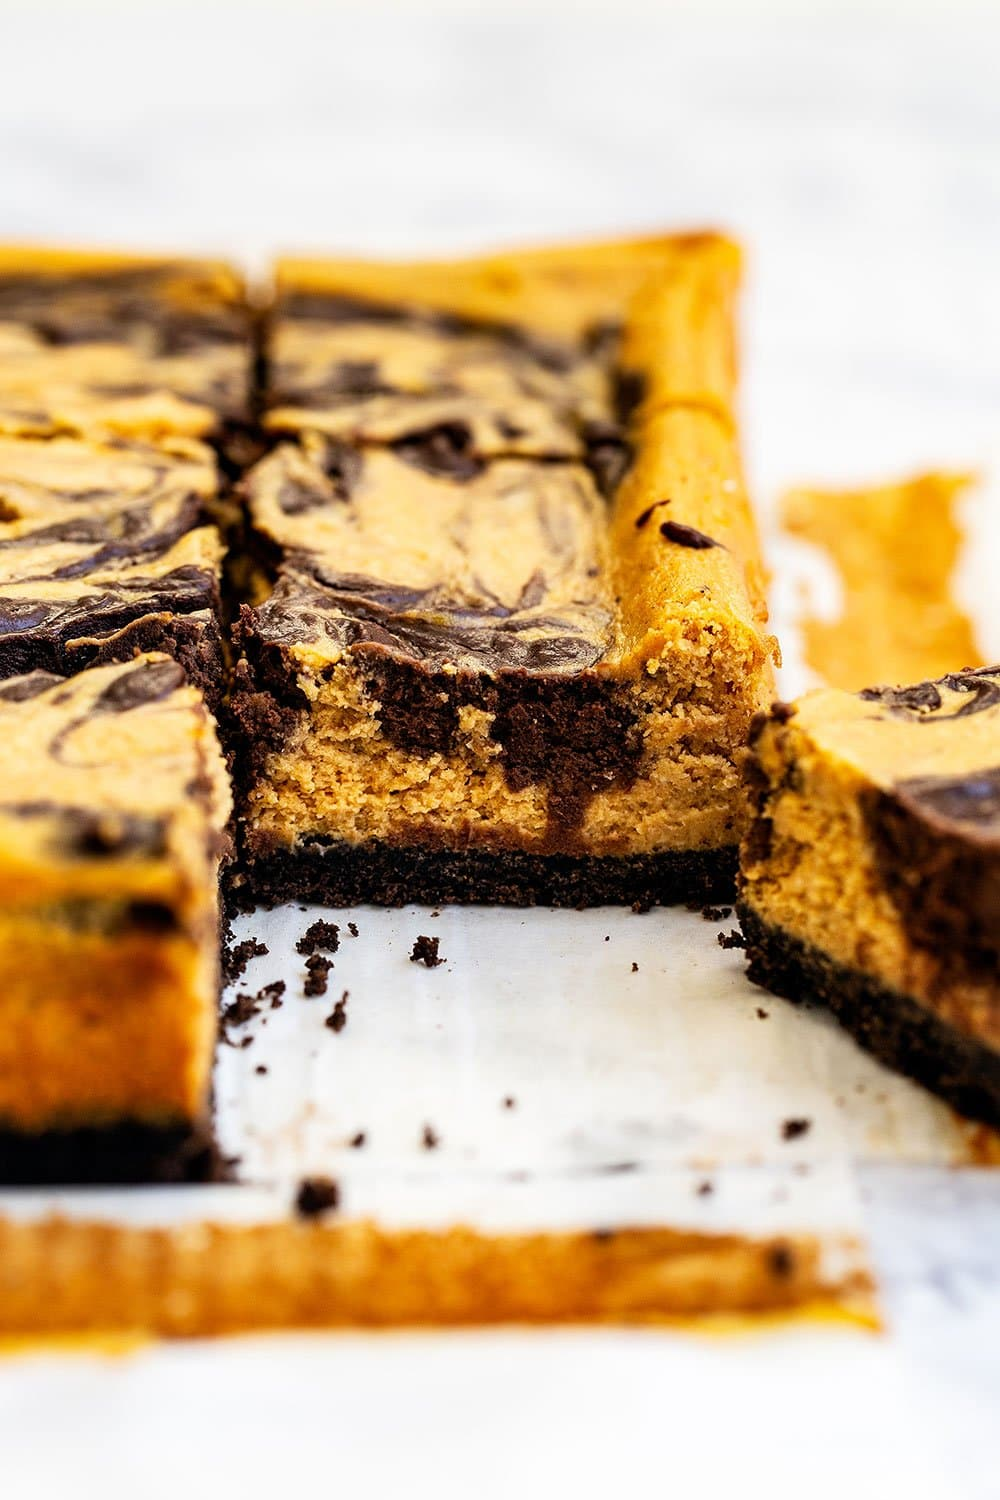 Pumpkin chocolate cheesecake being cut into squares